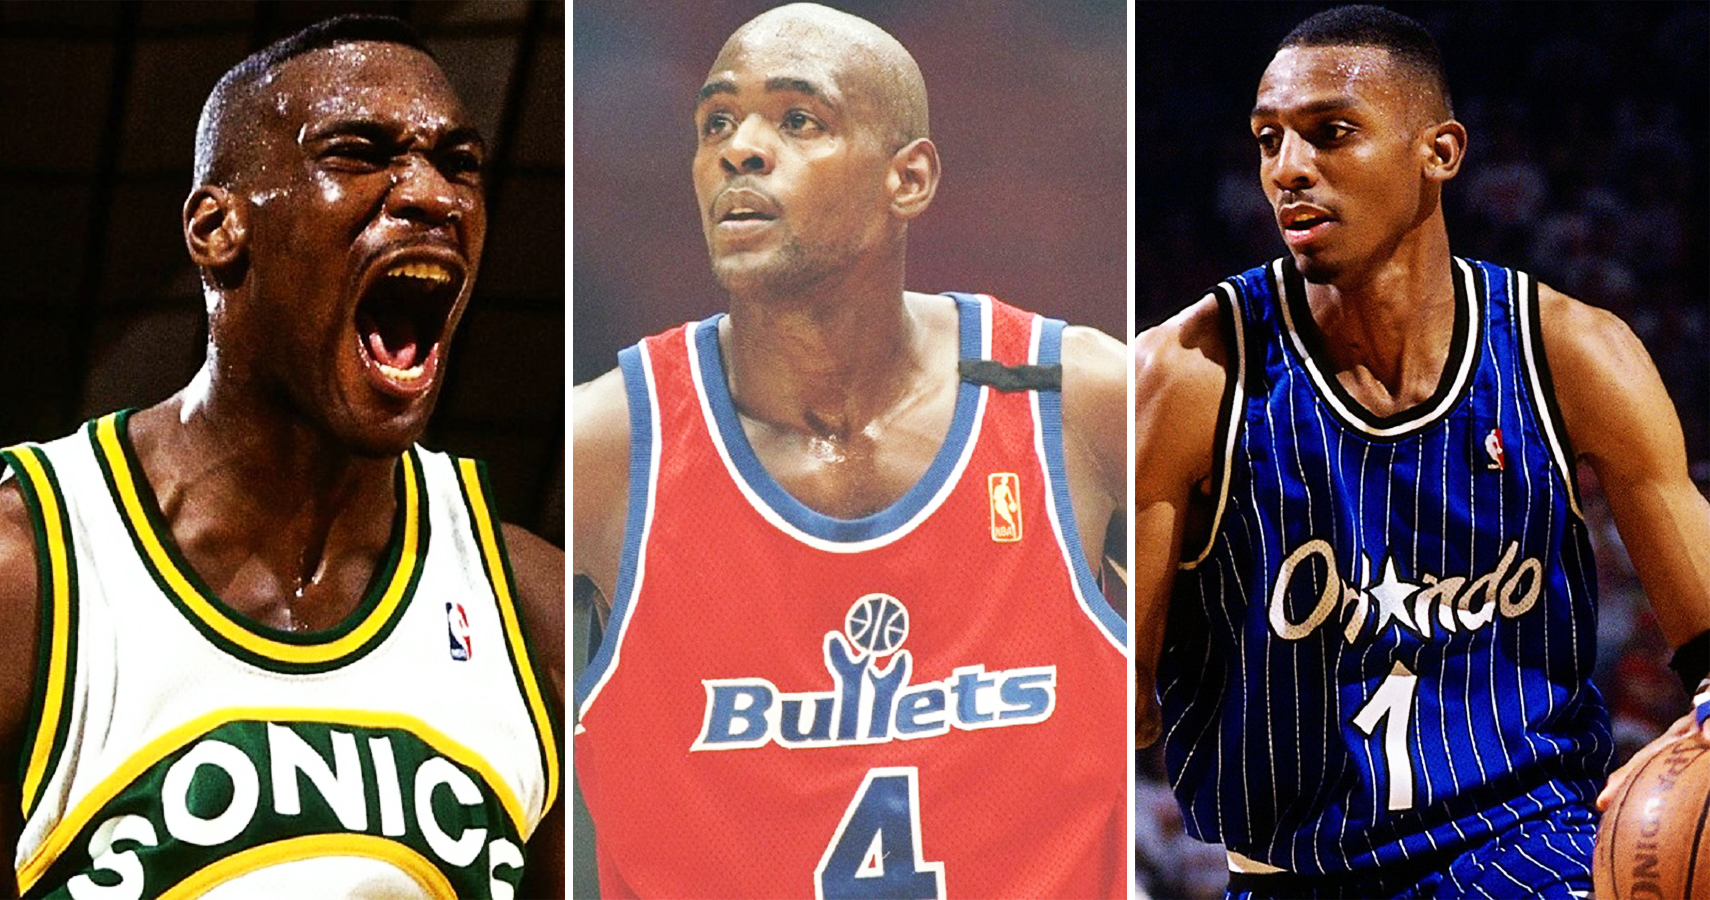 Top 15 NBA Players Who Are Overdue For A Hall Fame Induction